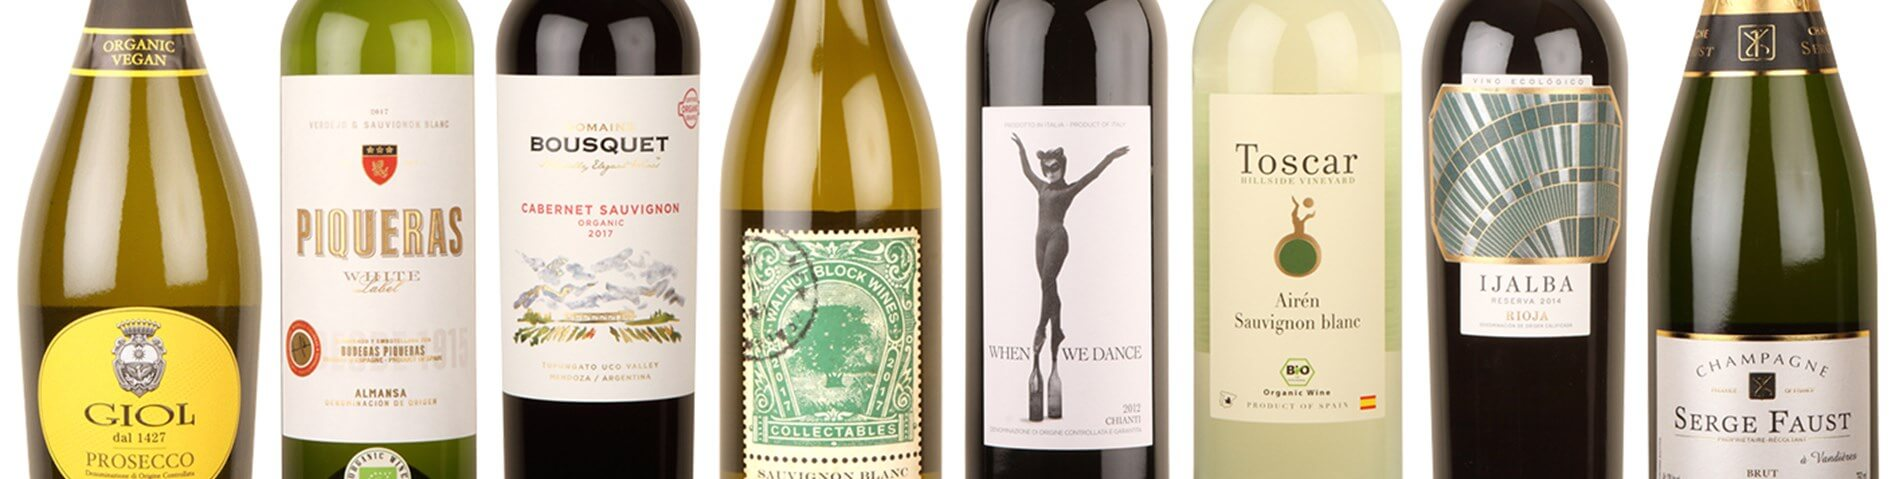 organic-wine-bottle-labels